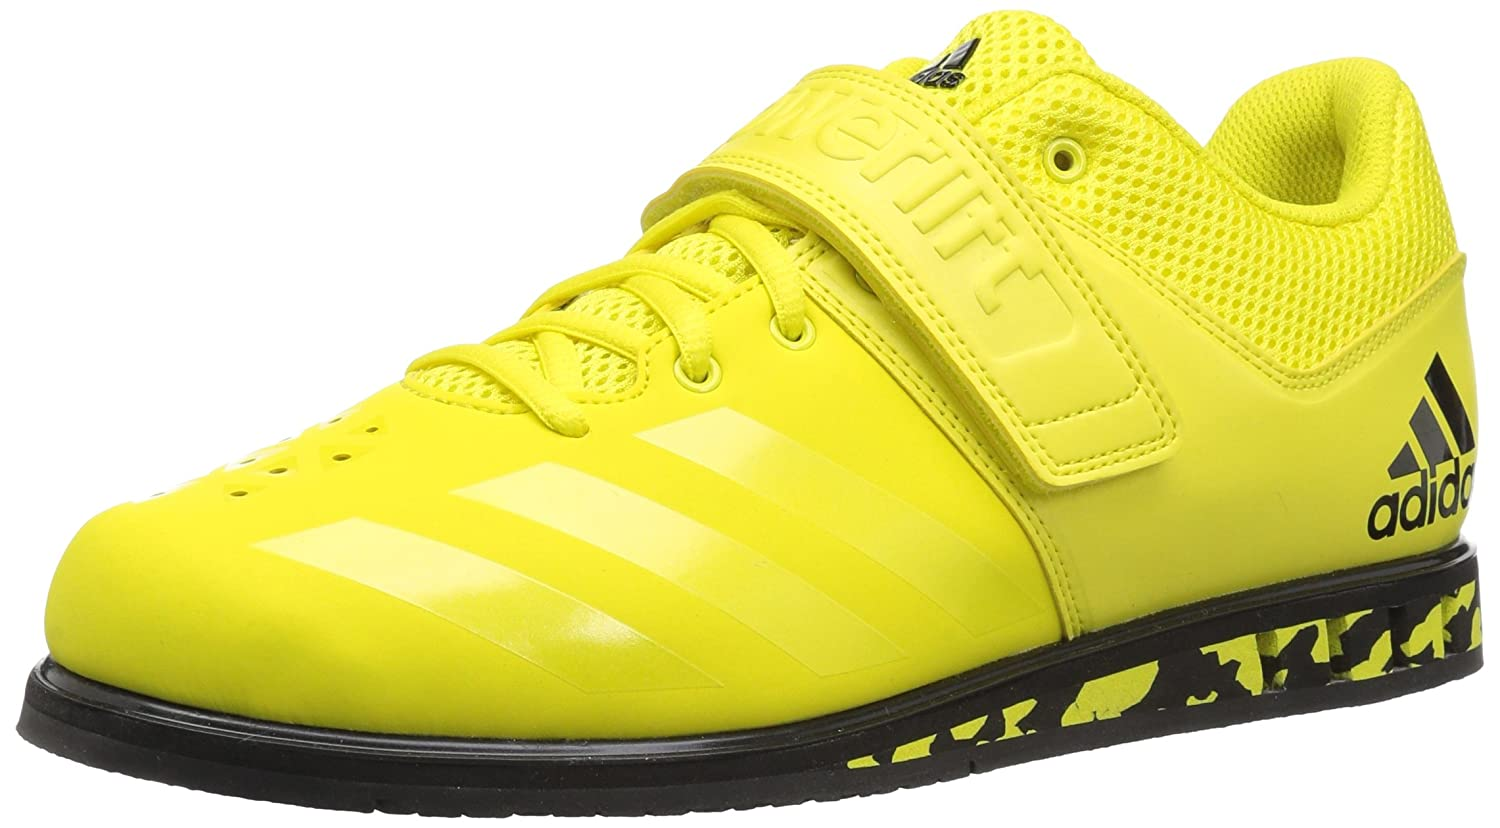 Shock Yellow Shock Yellow Black adidas Powerlift.3.1 shoes Men's Weightlifting